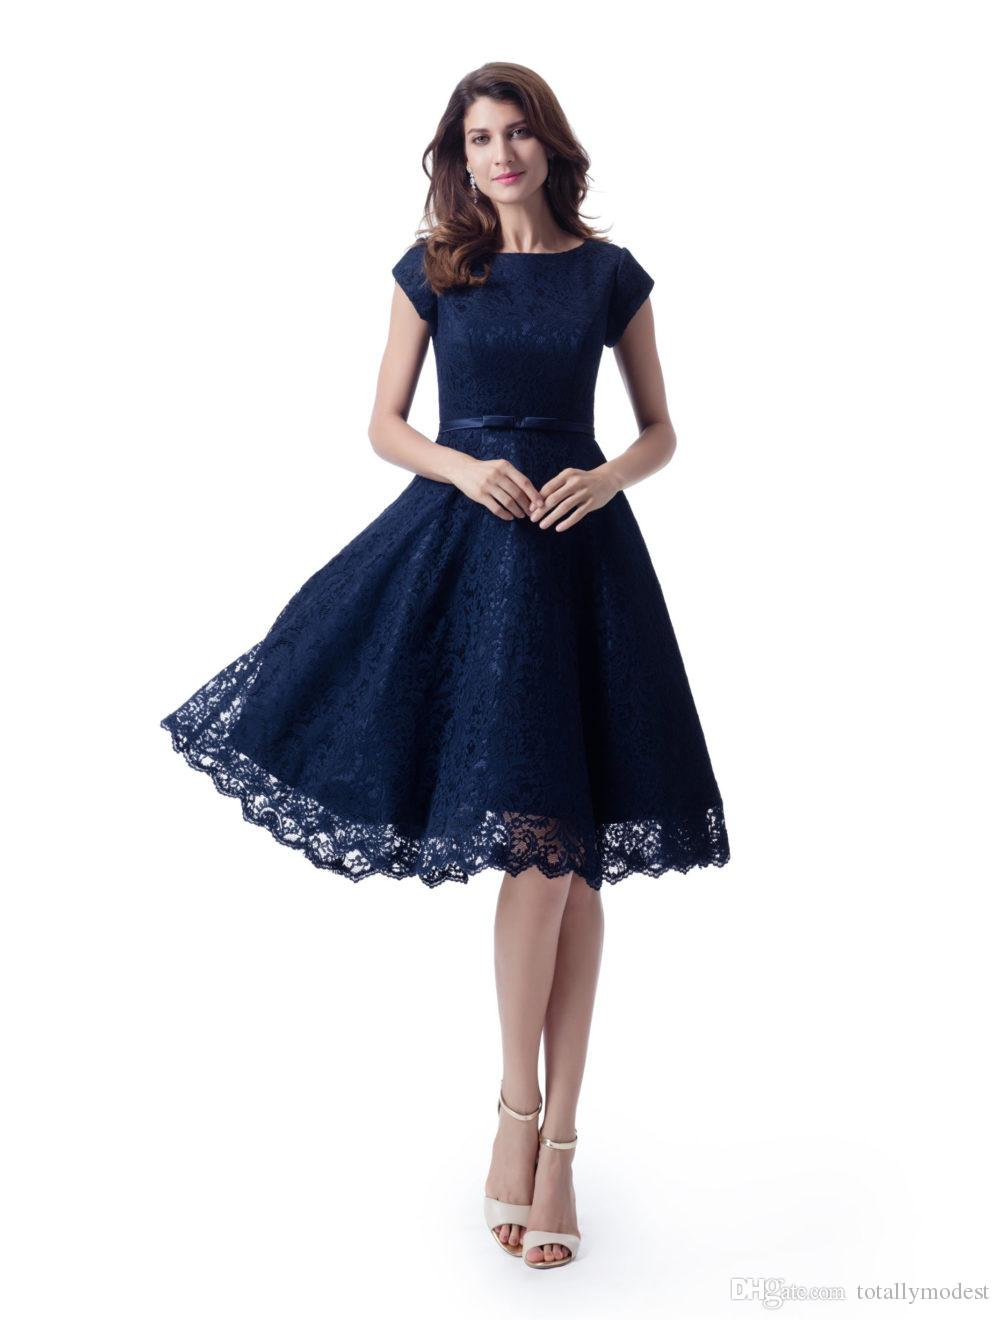 Vintage Dark Navy Blue Lace Short Modest Bridesmaid Dresses With Cap Sleeves A Line Knee Length Informal Country Wedding Bridesmaid Robes 20 Trendy